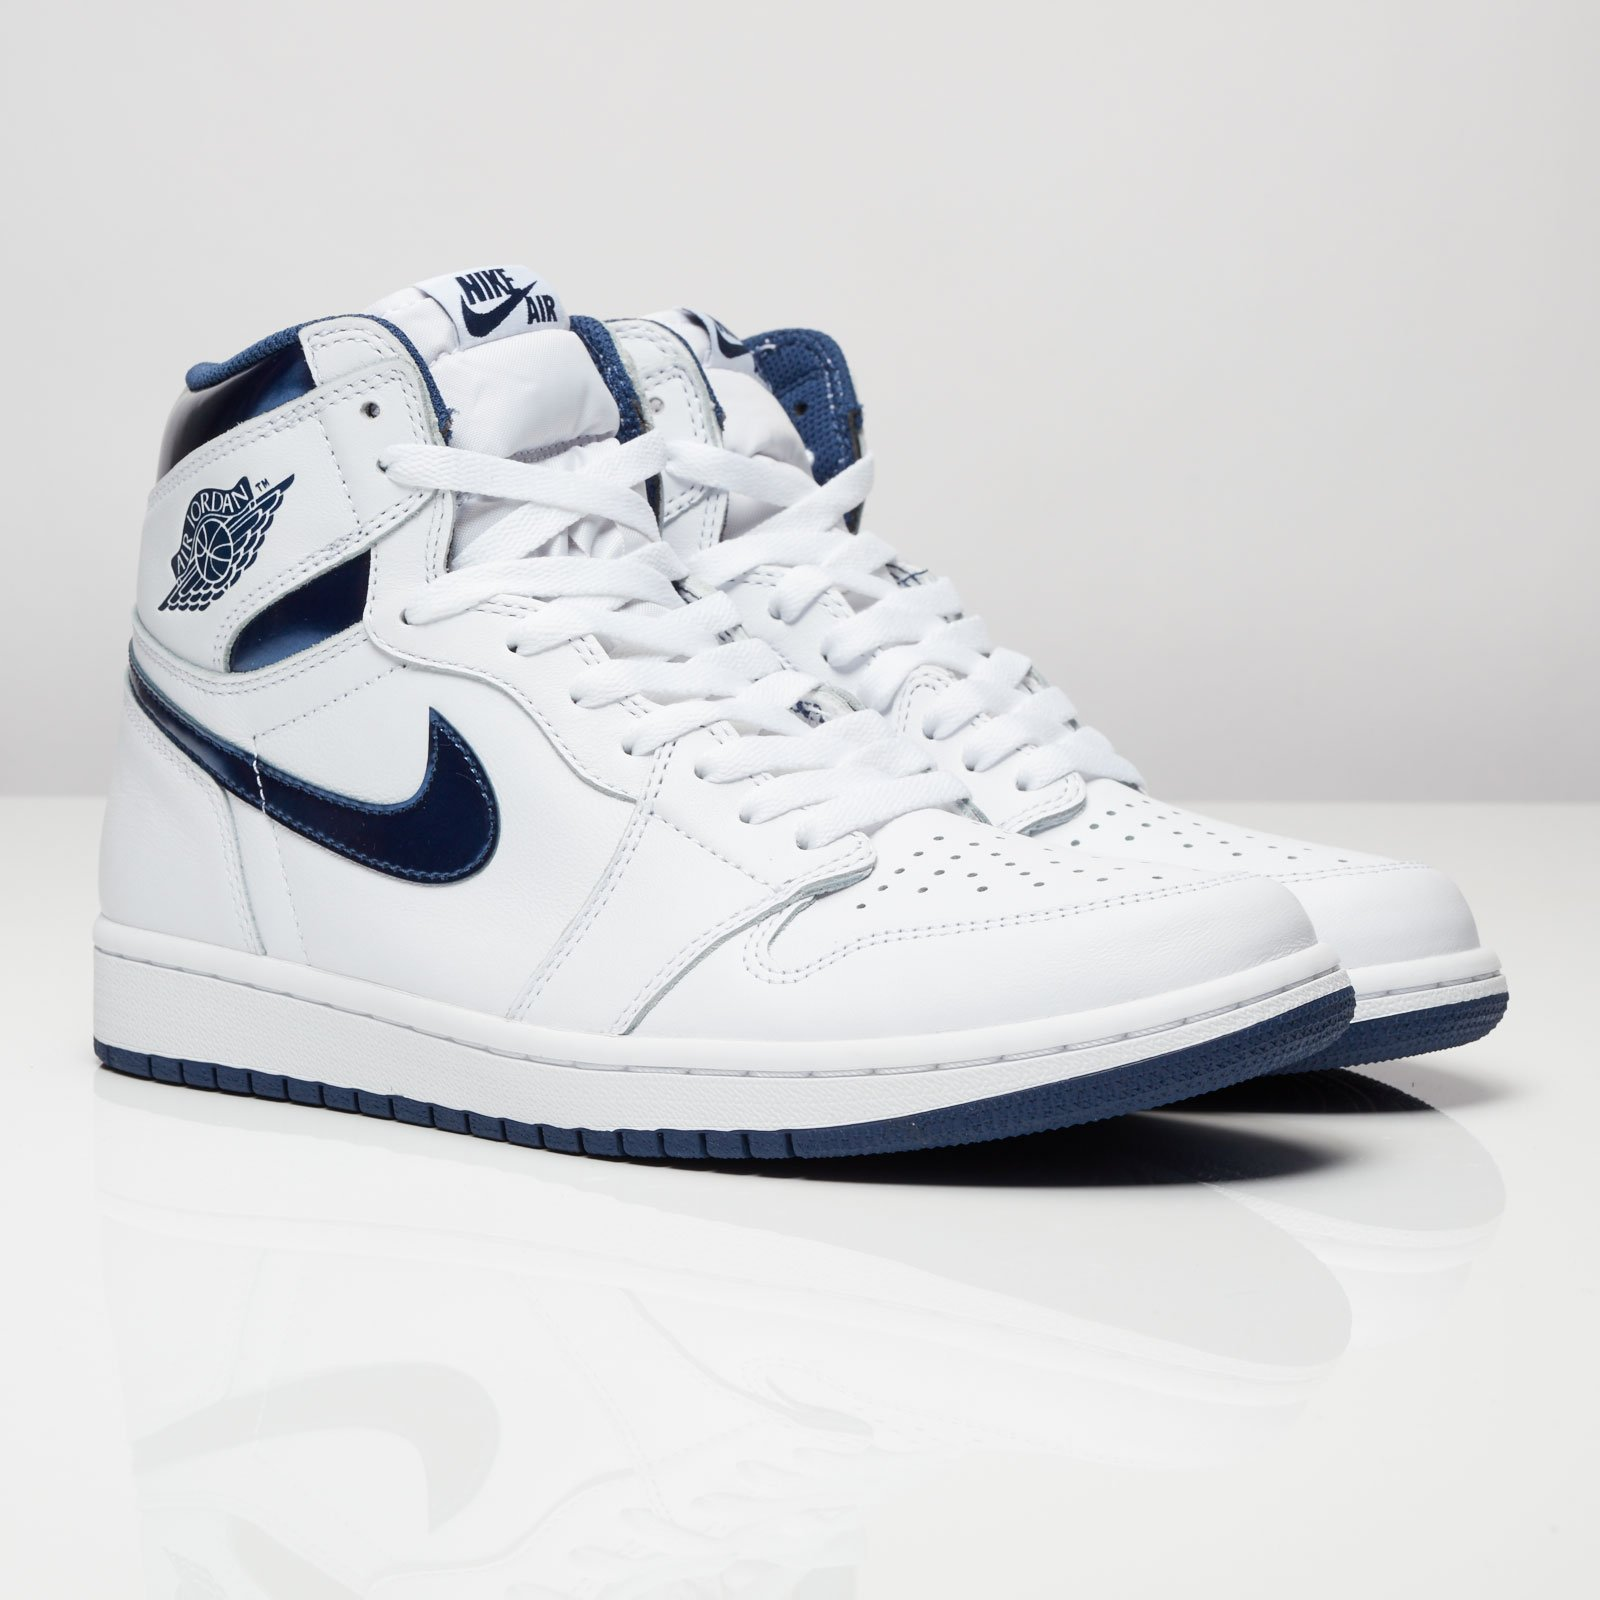 half off 013d0 1b78b Jordan Brand Air Jordan 1 Retro High OG